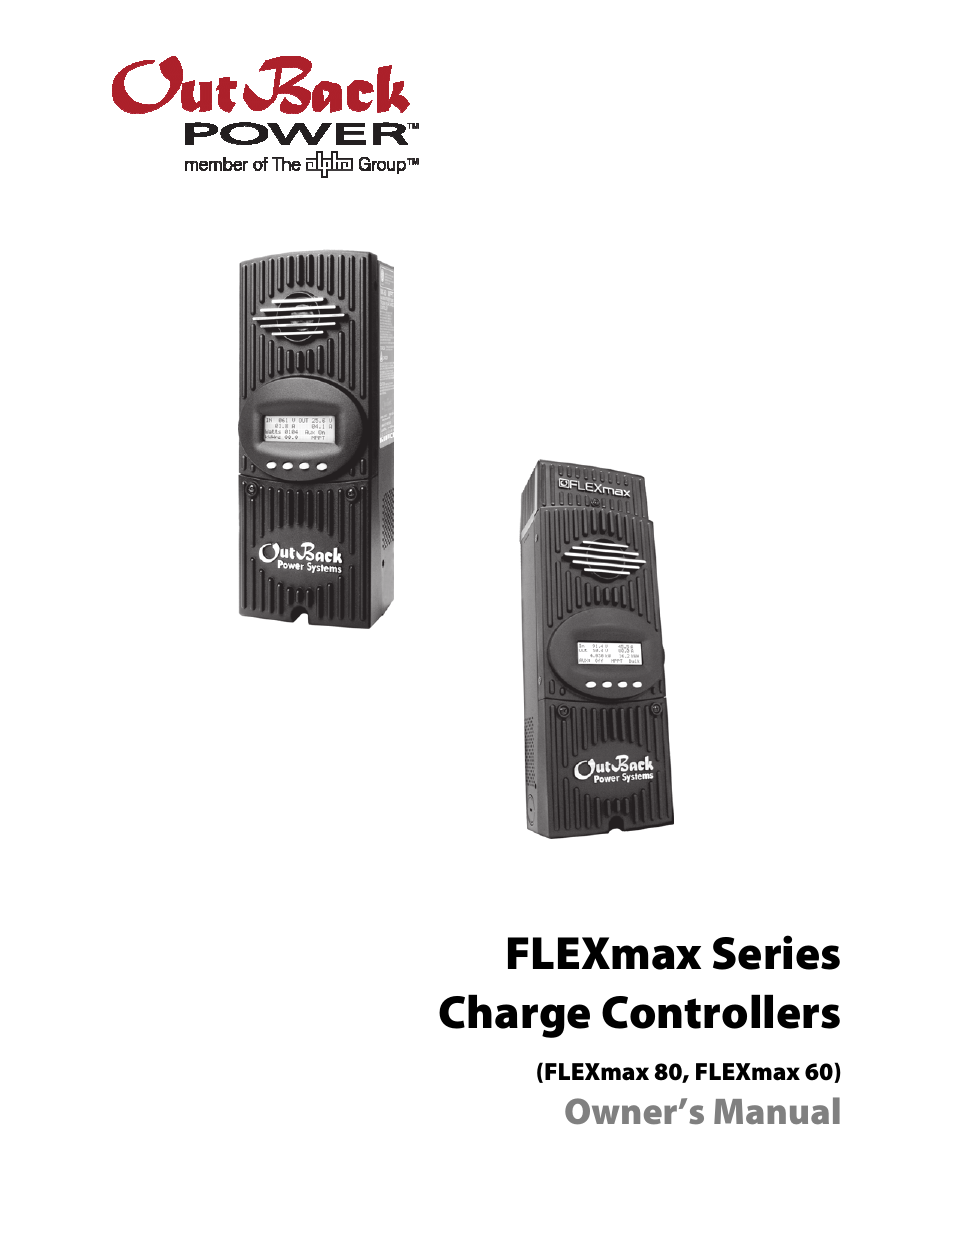 Outback charge controller manual